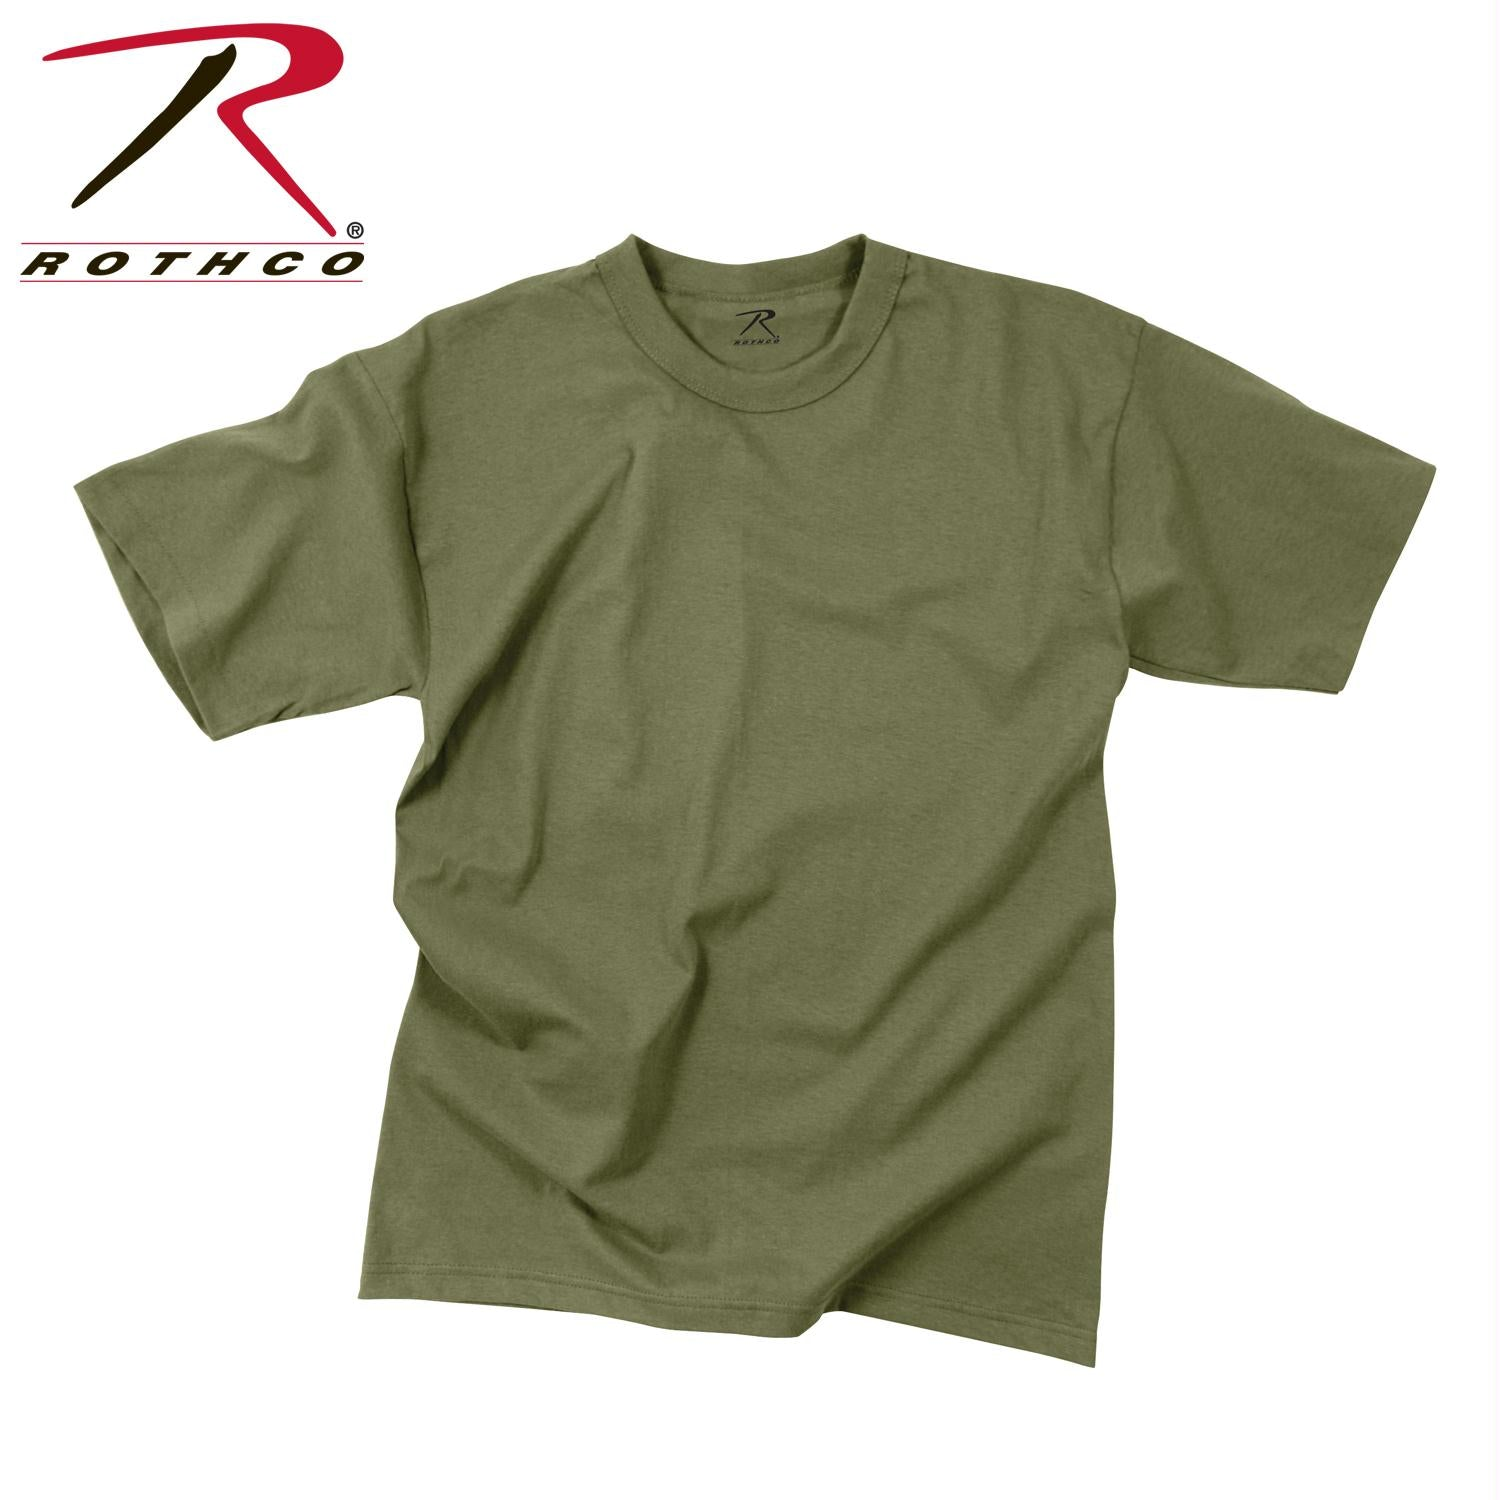 Rothco Moisture Wicking T-Shirts - Olive Drab / XL